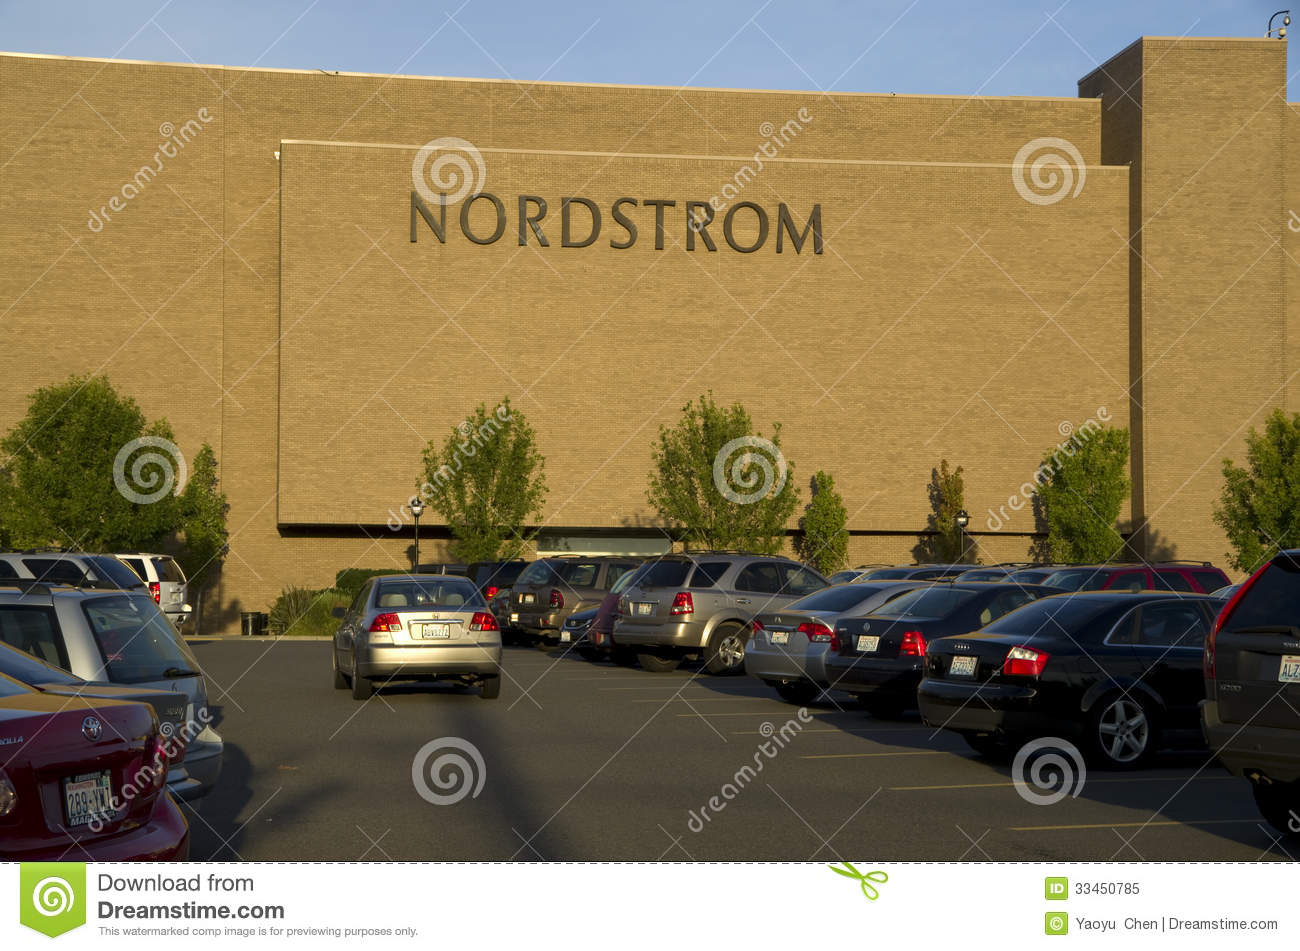 Nordstrom department store Editorial Image